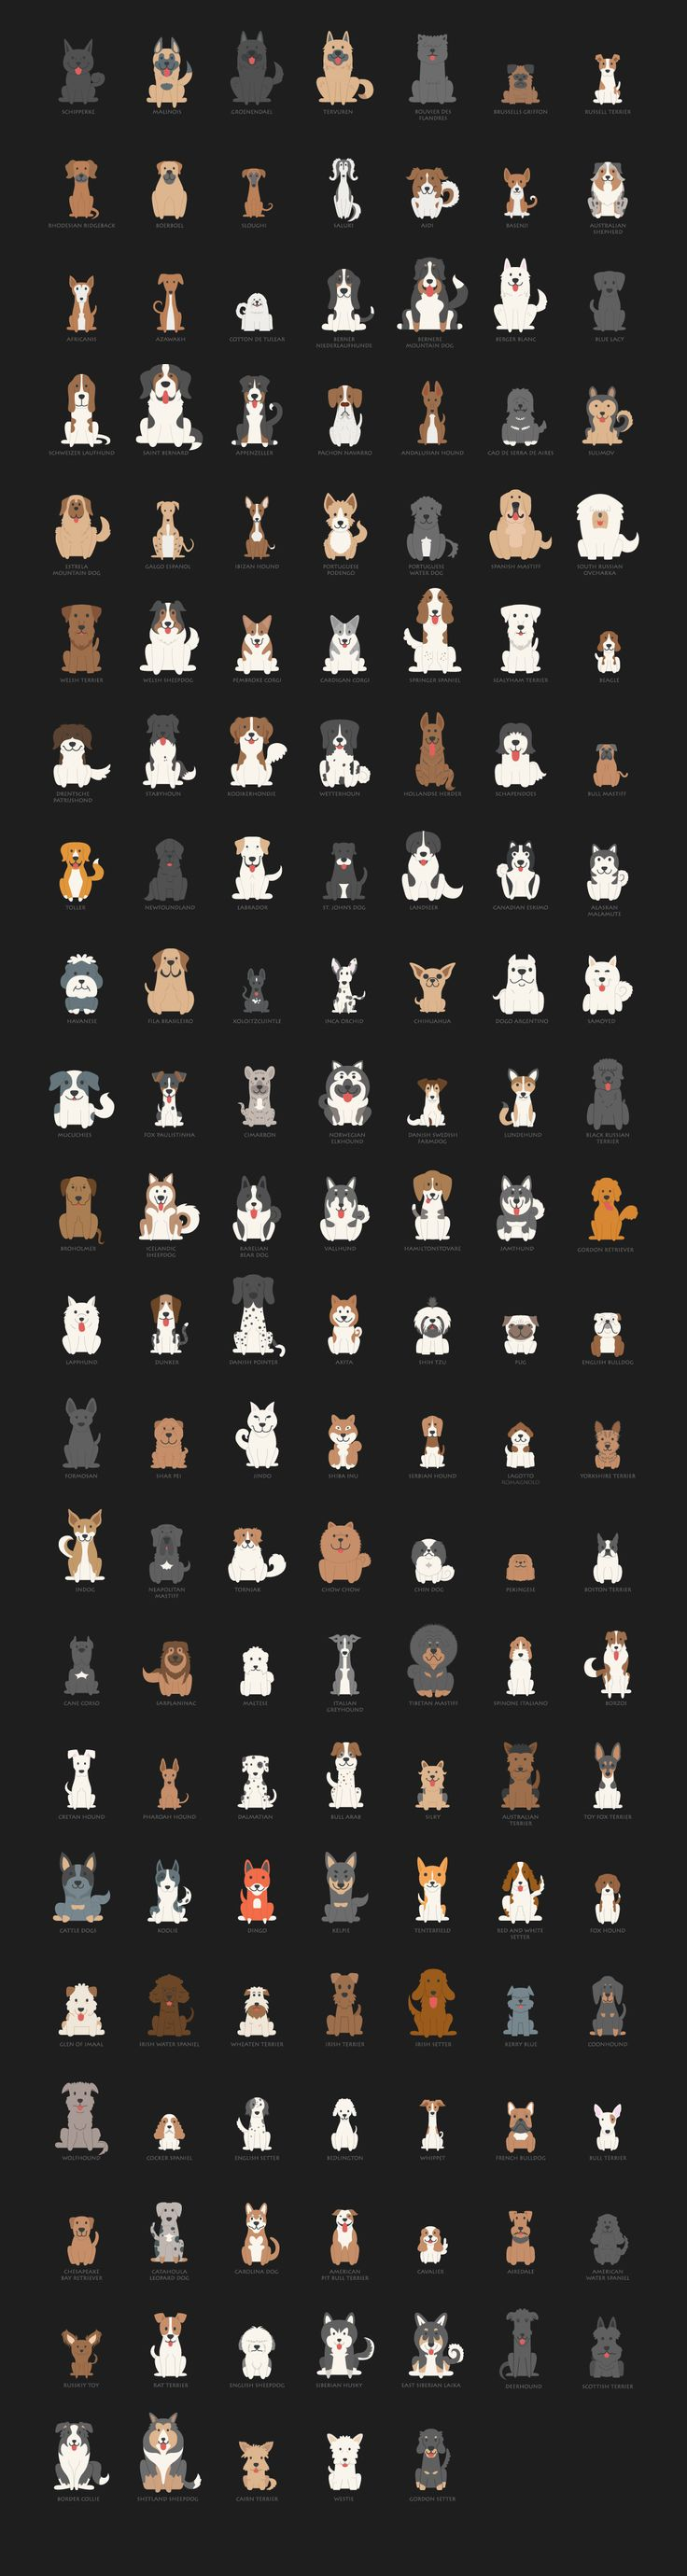 Dog Charact by eucalyp on @creativemarket